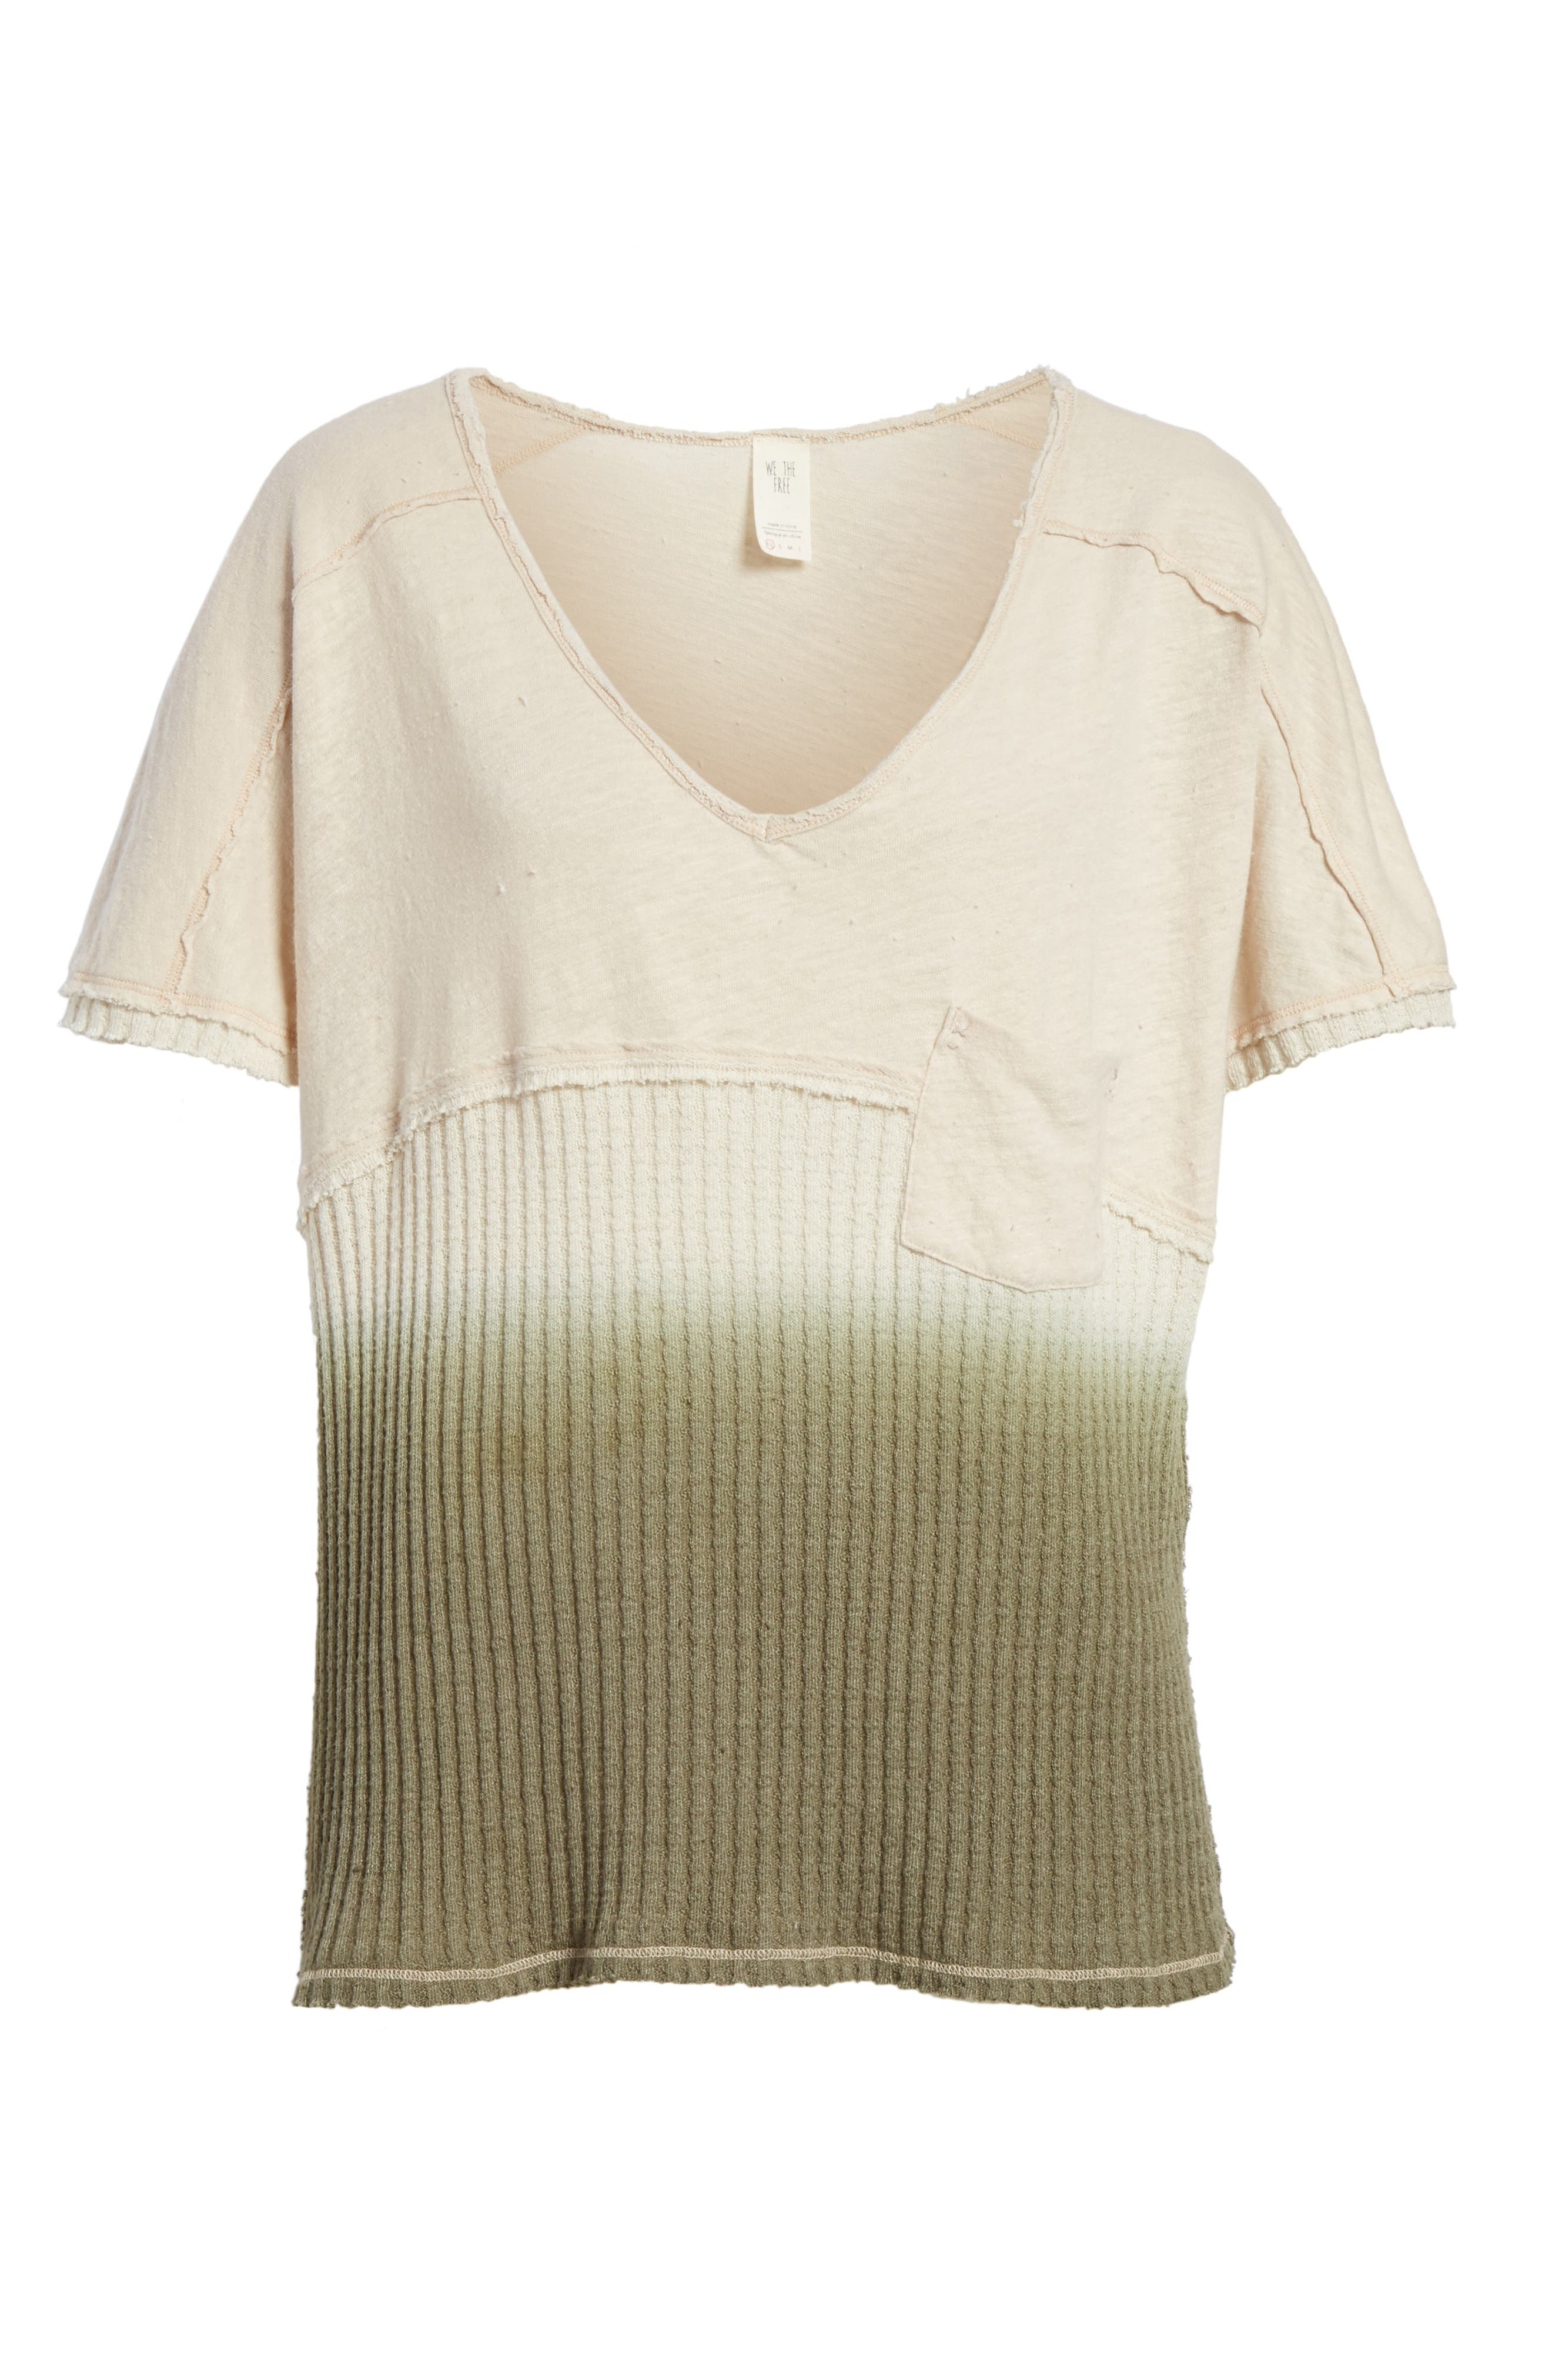 FREE PEOPLE,                             Sun Dial Tee,                             Alternate thumbnail 6, color,                             251